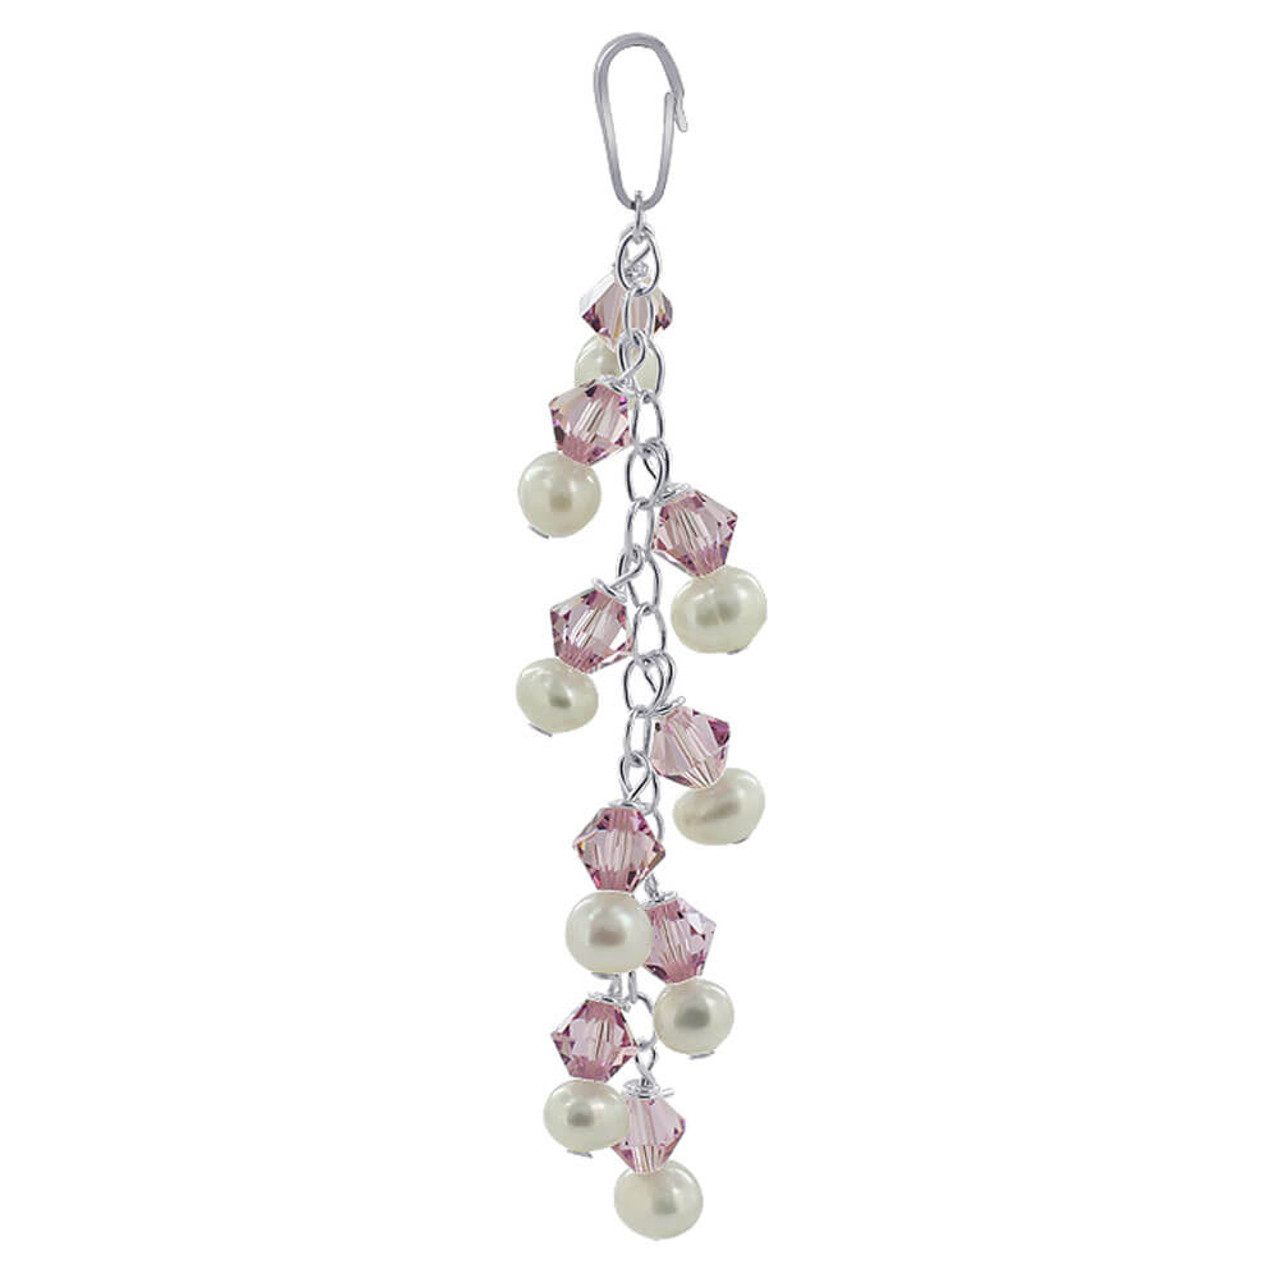 Sterling Silver White Freshwater Pearls with Light Amethyst Color Bicone s Pendant